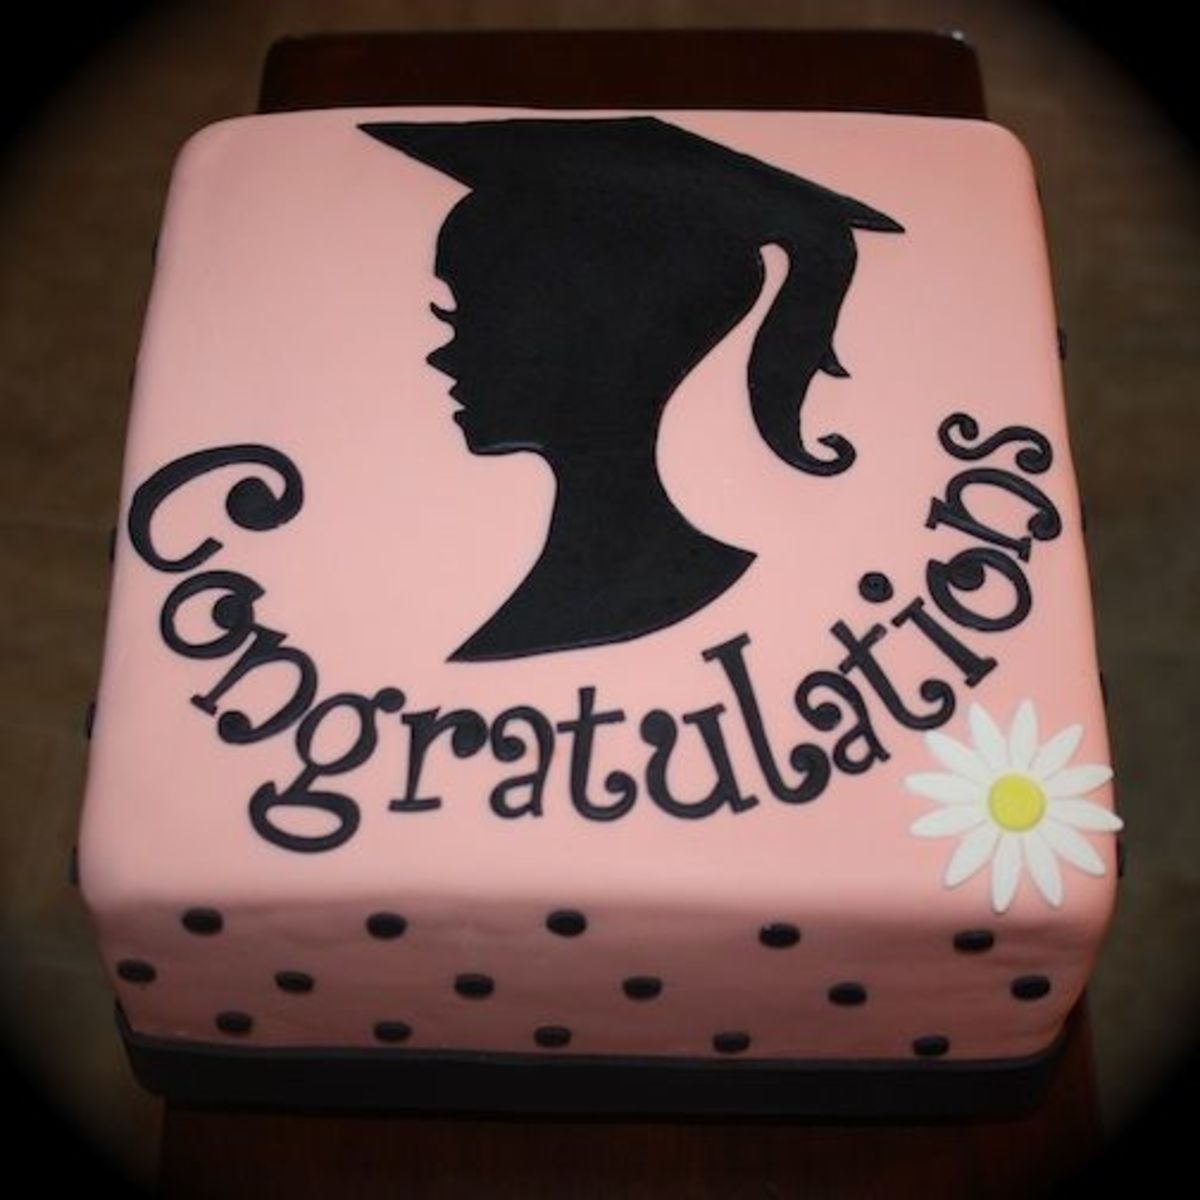 I stumbled upon this silhouette cake on Pinterest via Cake Central. This is a unique graduation cake idea!